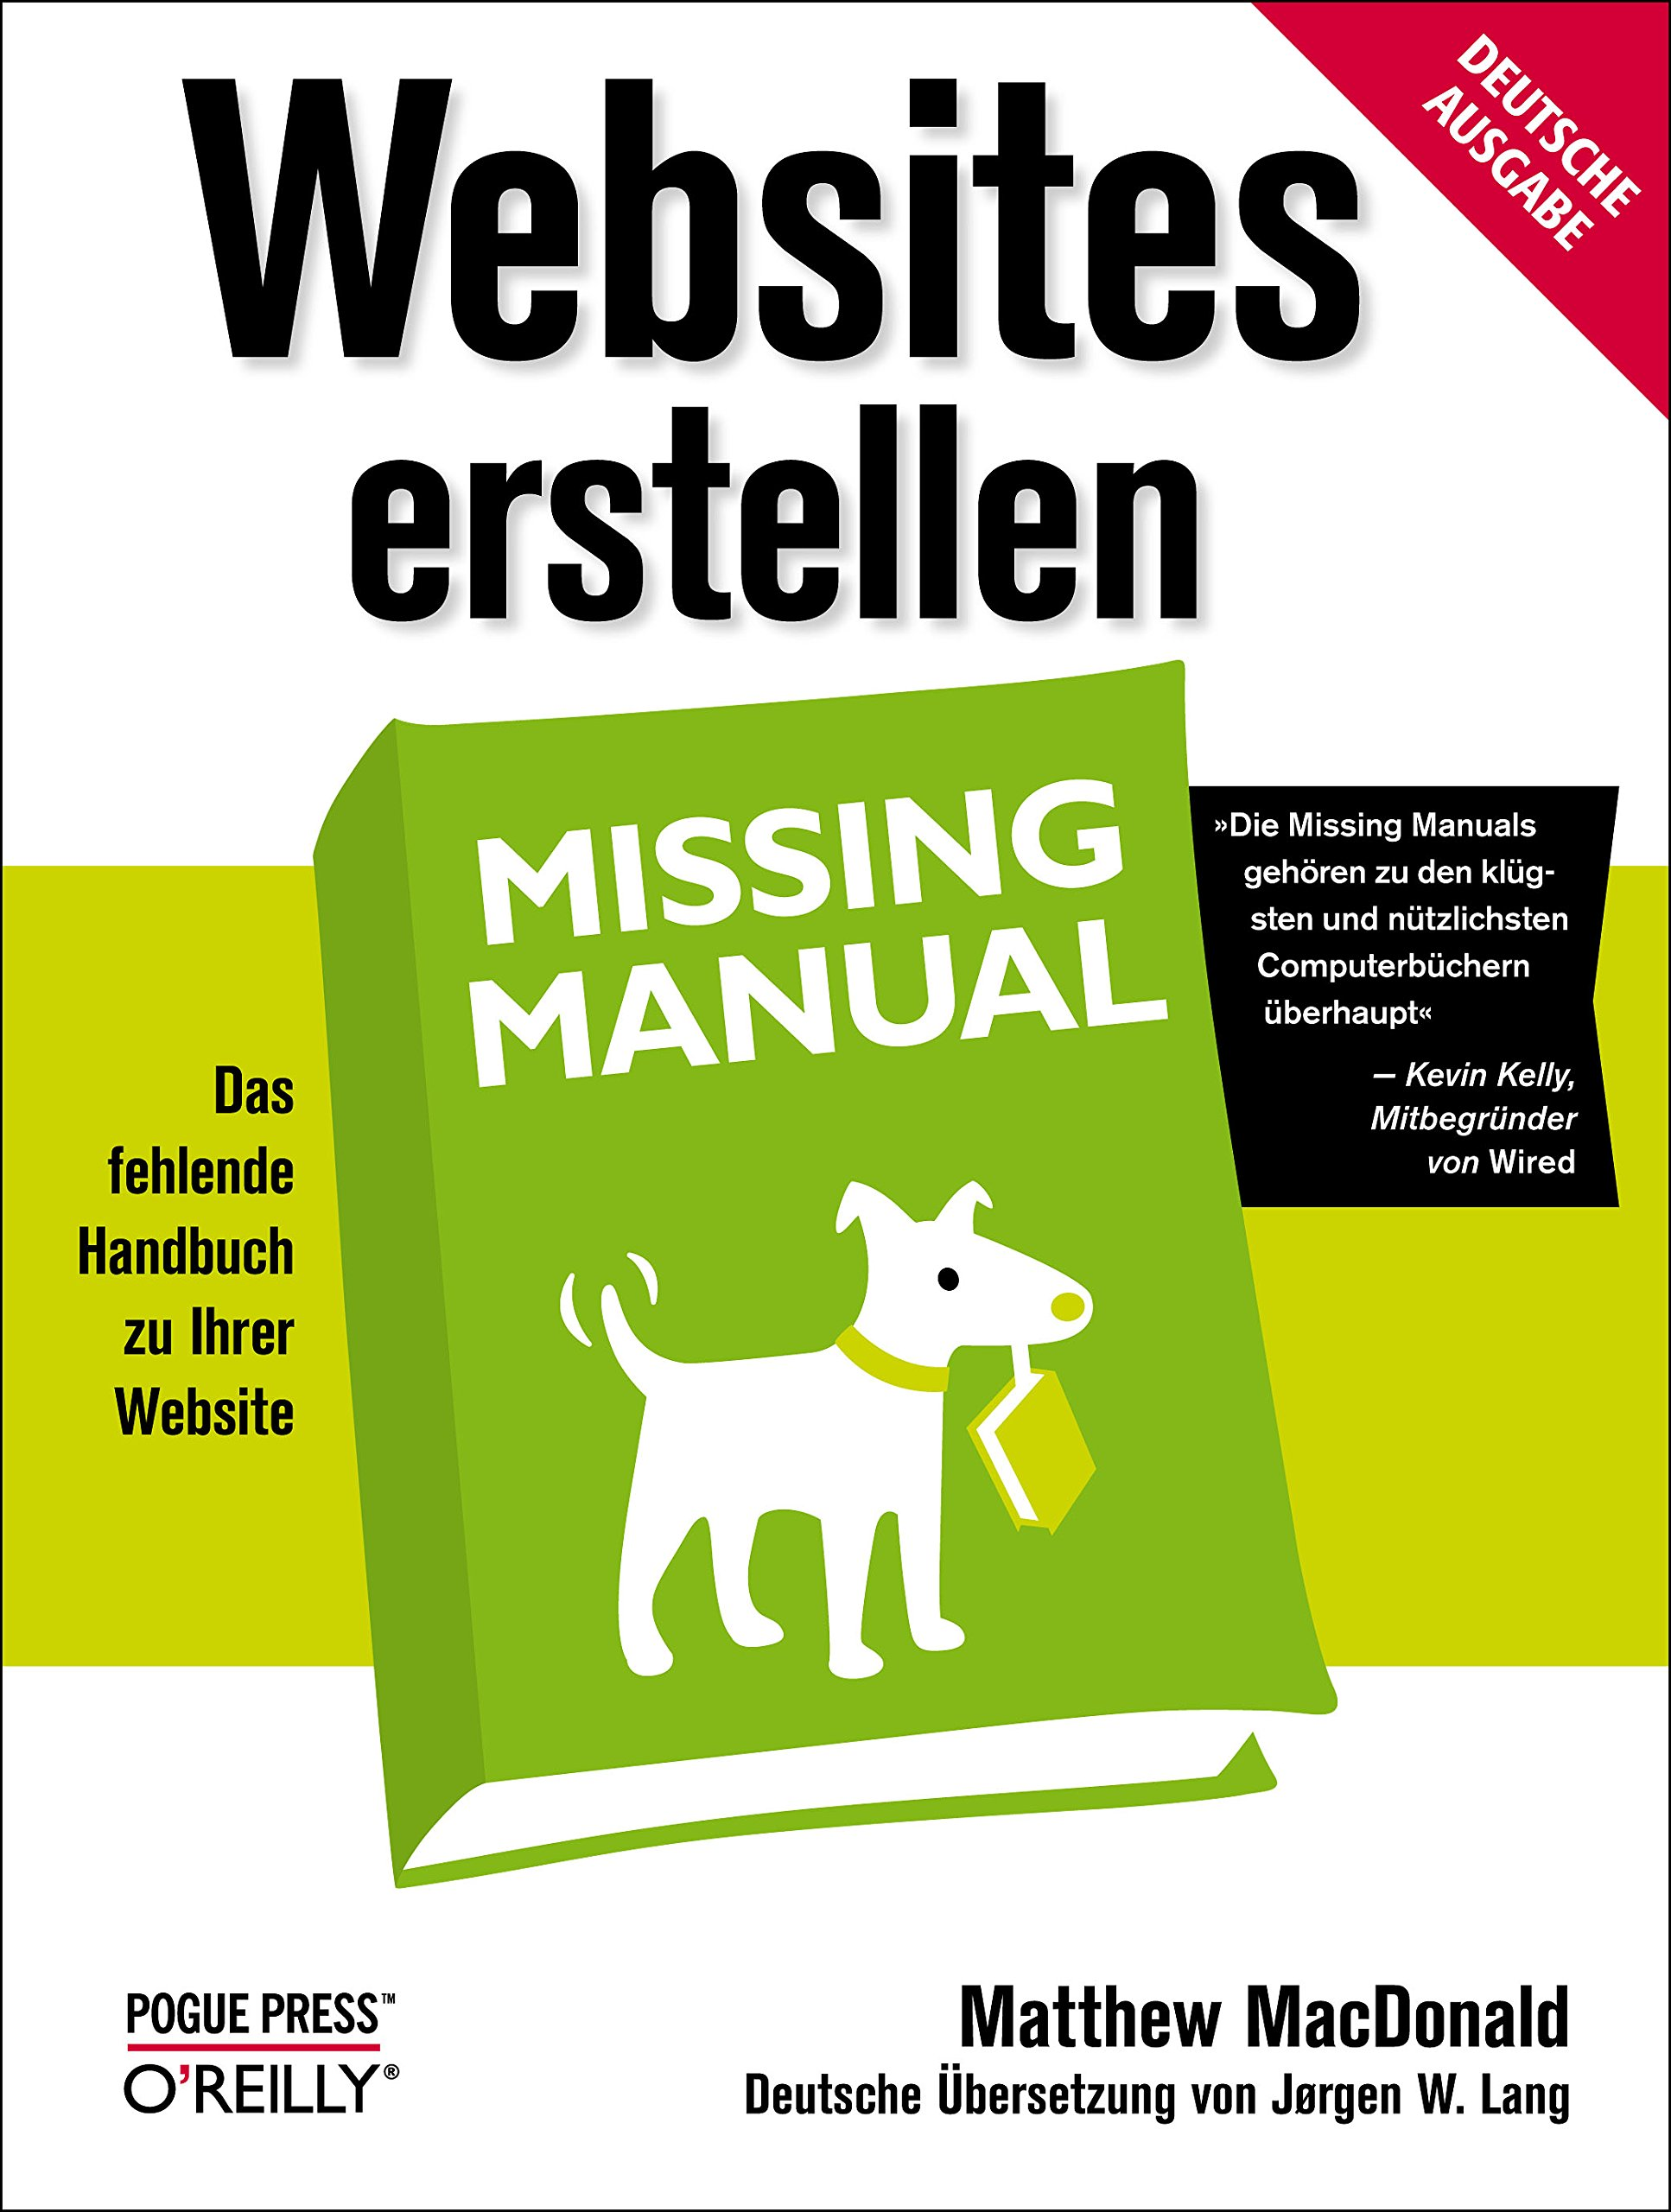 Websites erstellen: Missing Manual